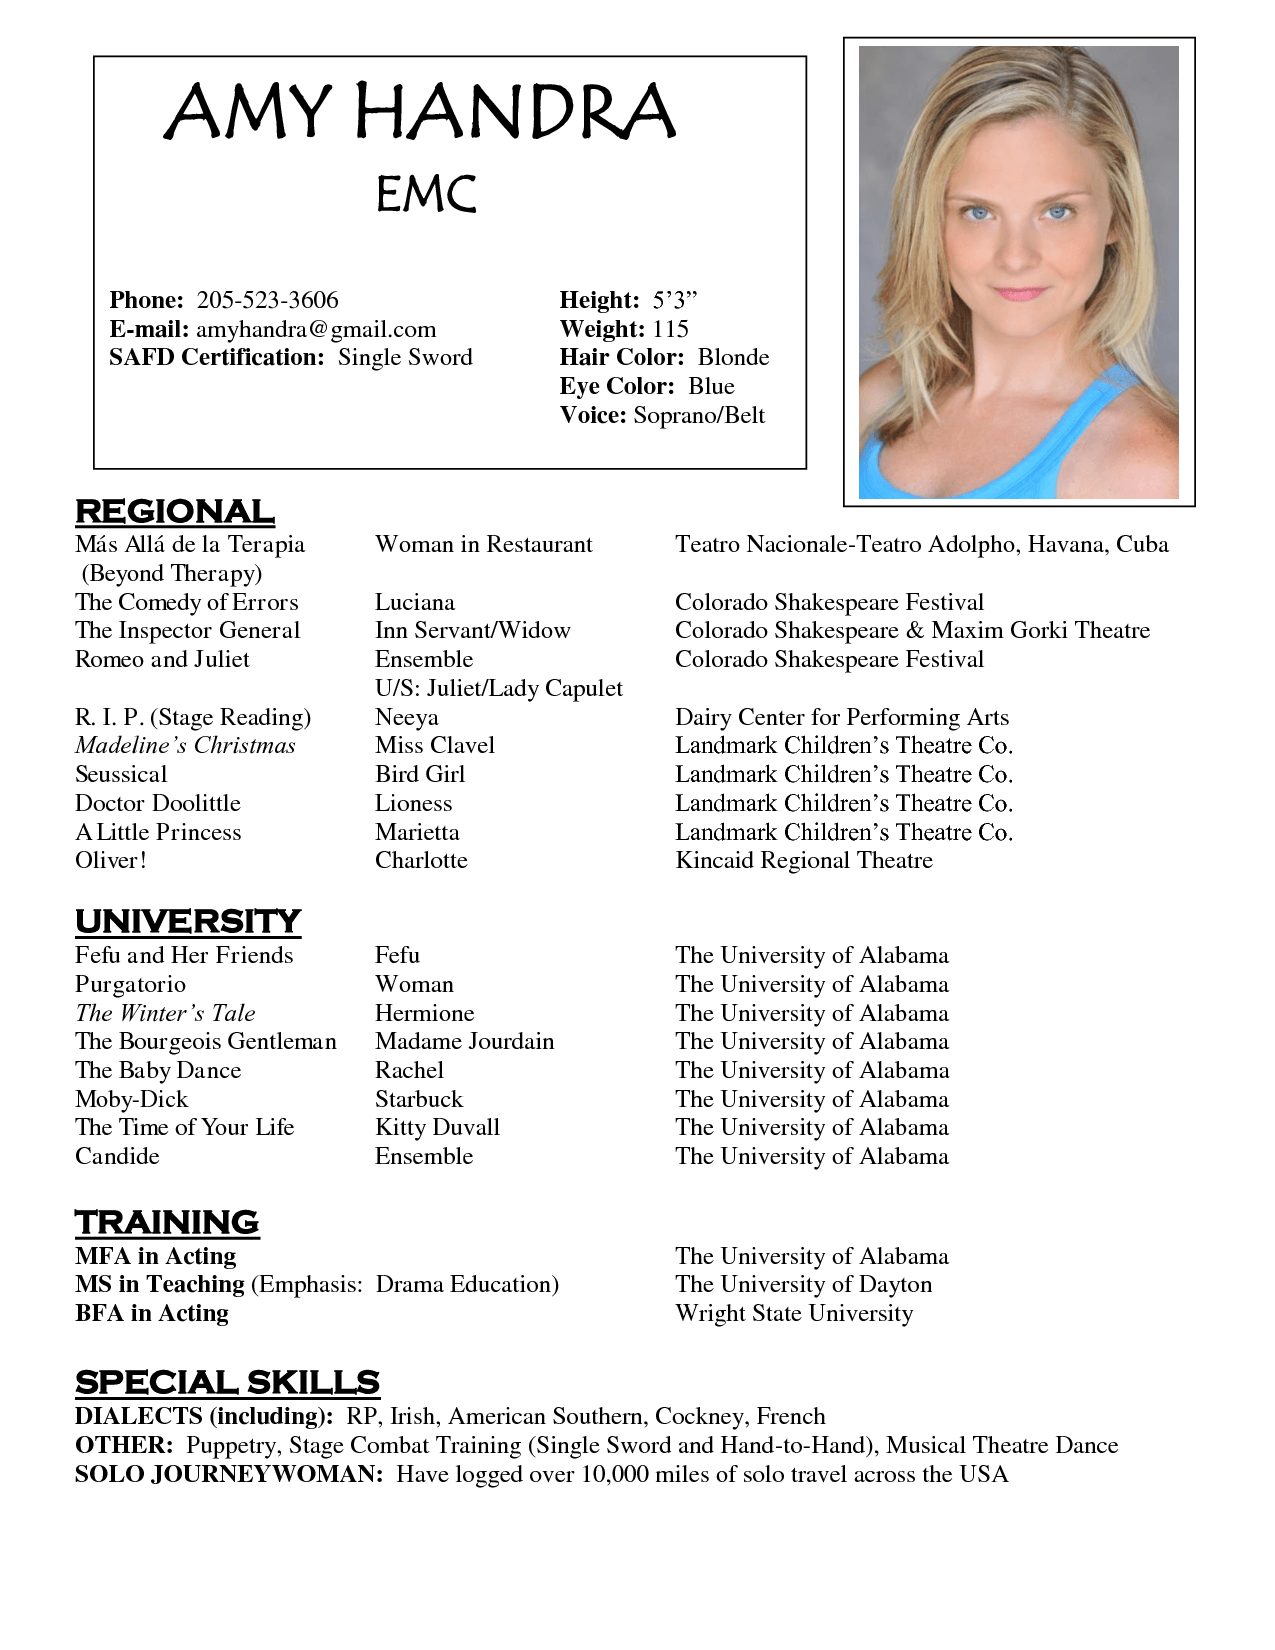 acting resume templet free